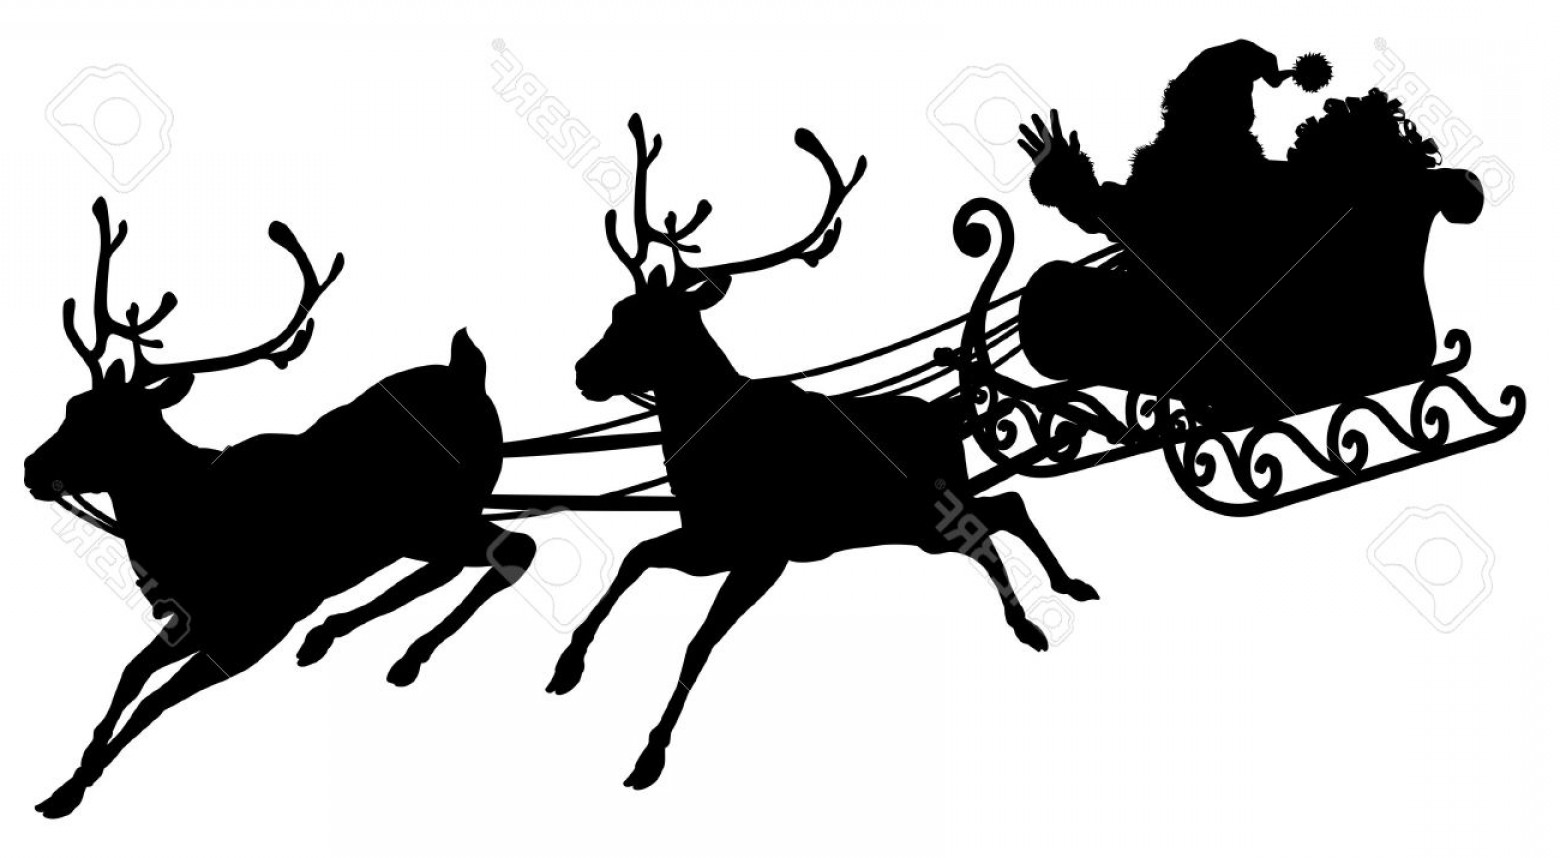 Black Santa Sleigh Vector: Photosanta Sleigh Silhouette Illustration Of Santa Claus In His Sleigh Flying Through The Sky Being Pulle